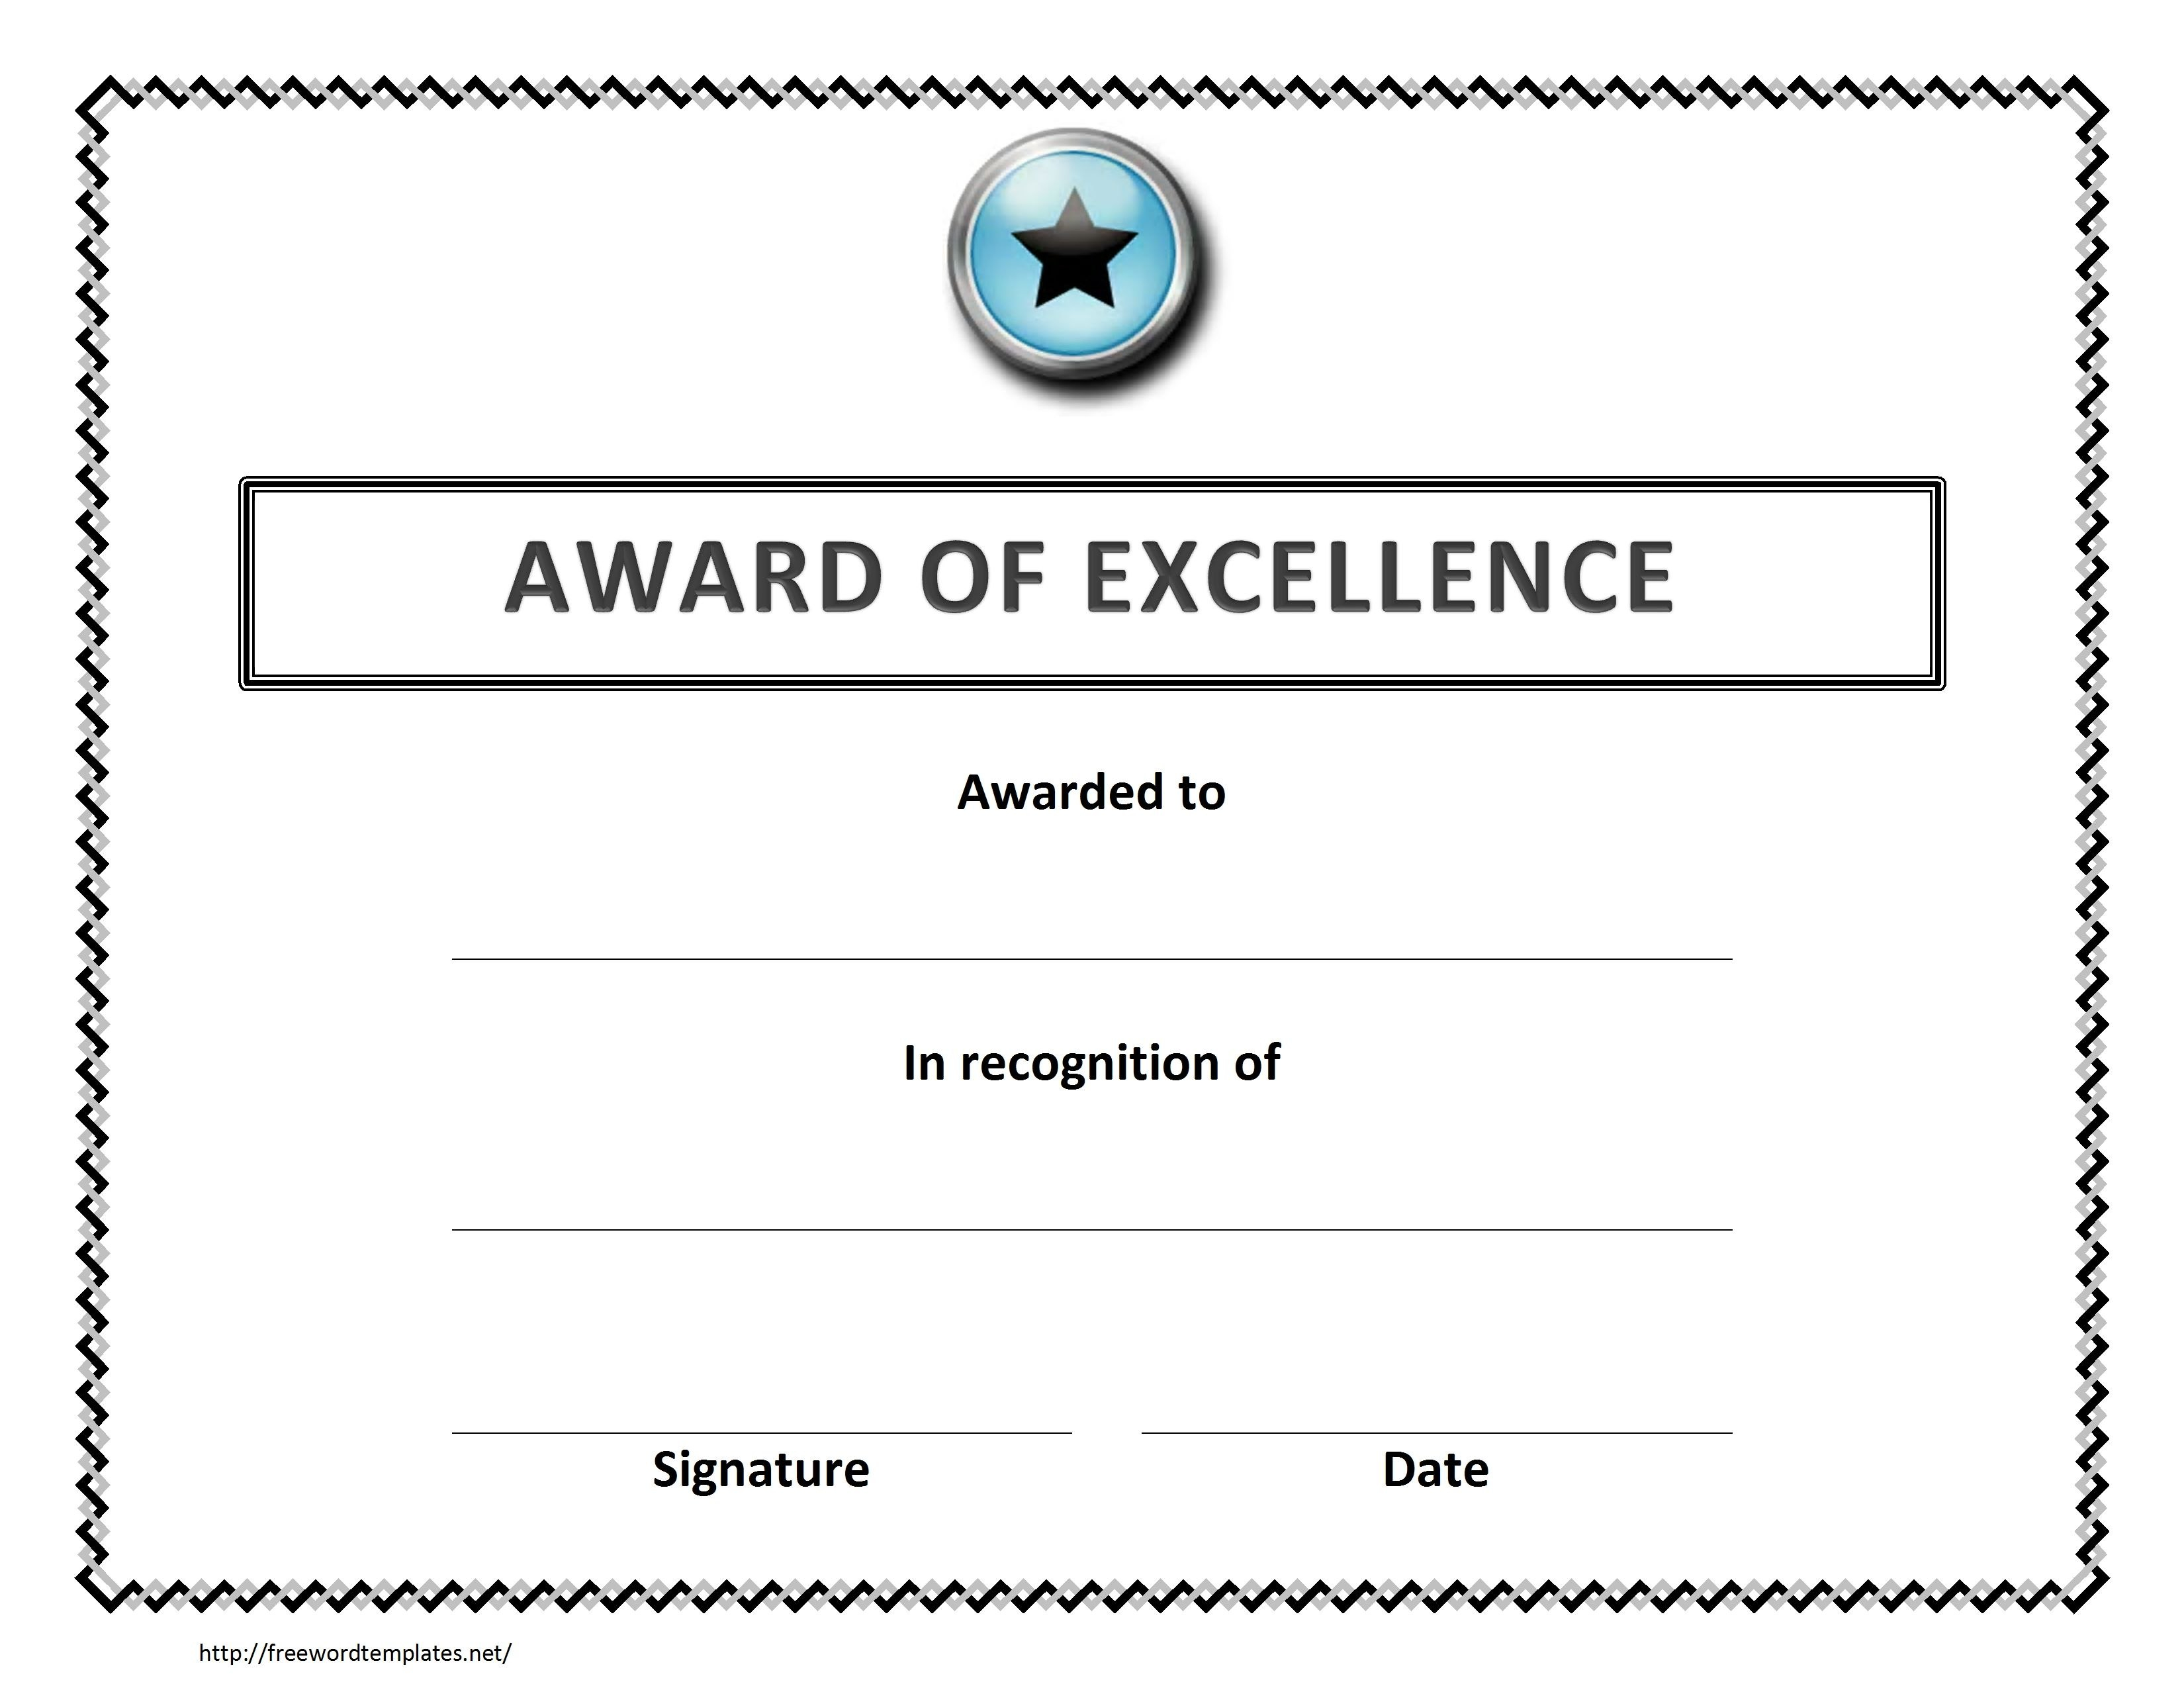 Award Of Excellence Certificate Template  Sansurabionetassociats Intended For Certificate Of Excellence Template Word